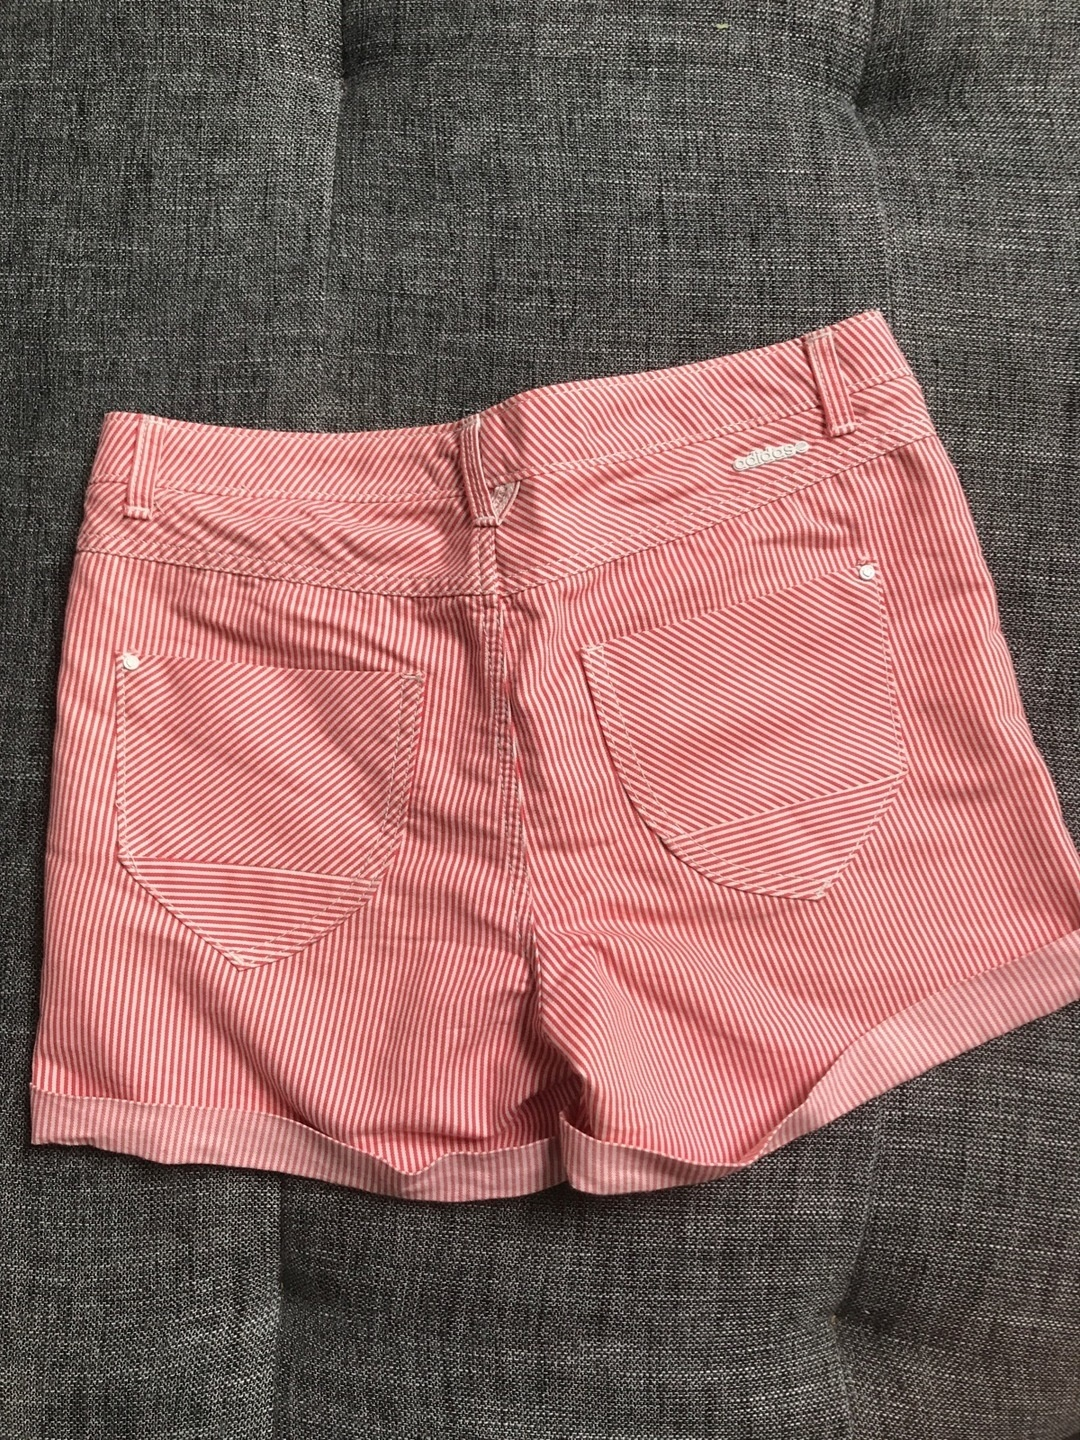 Women's shorts - ADIDAS photo 2